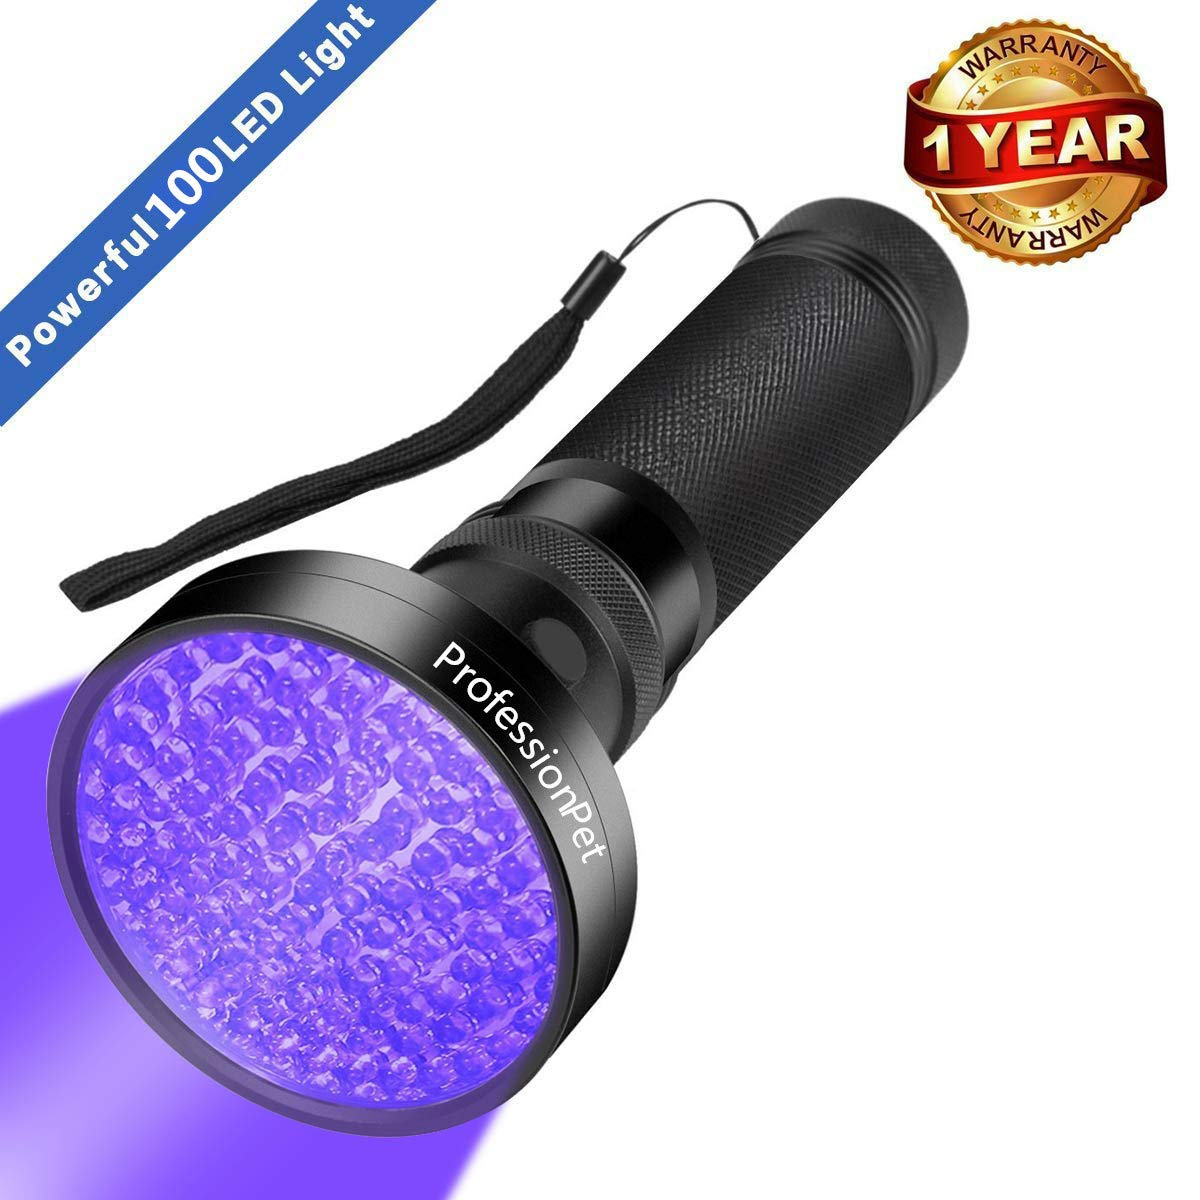 UV Black Light Flashlight, Super Bright 100 LED #1 Best Pet Dog Cat Urine Detector light Flashlight for Pet Pee Urine Stains, UV Blacklight Flashlight for Bed Bug Scorpions, Home Hotel (Black)